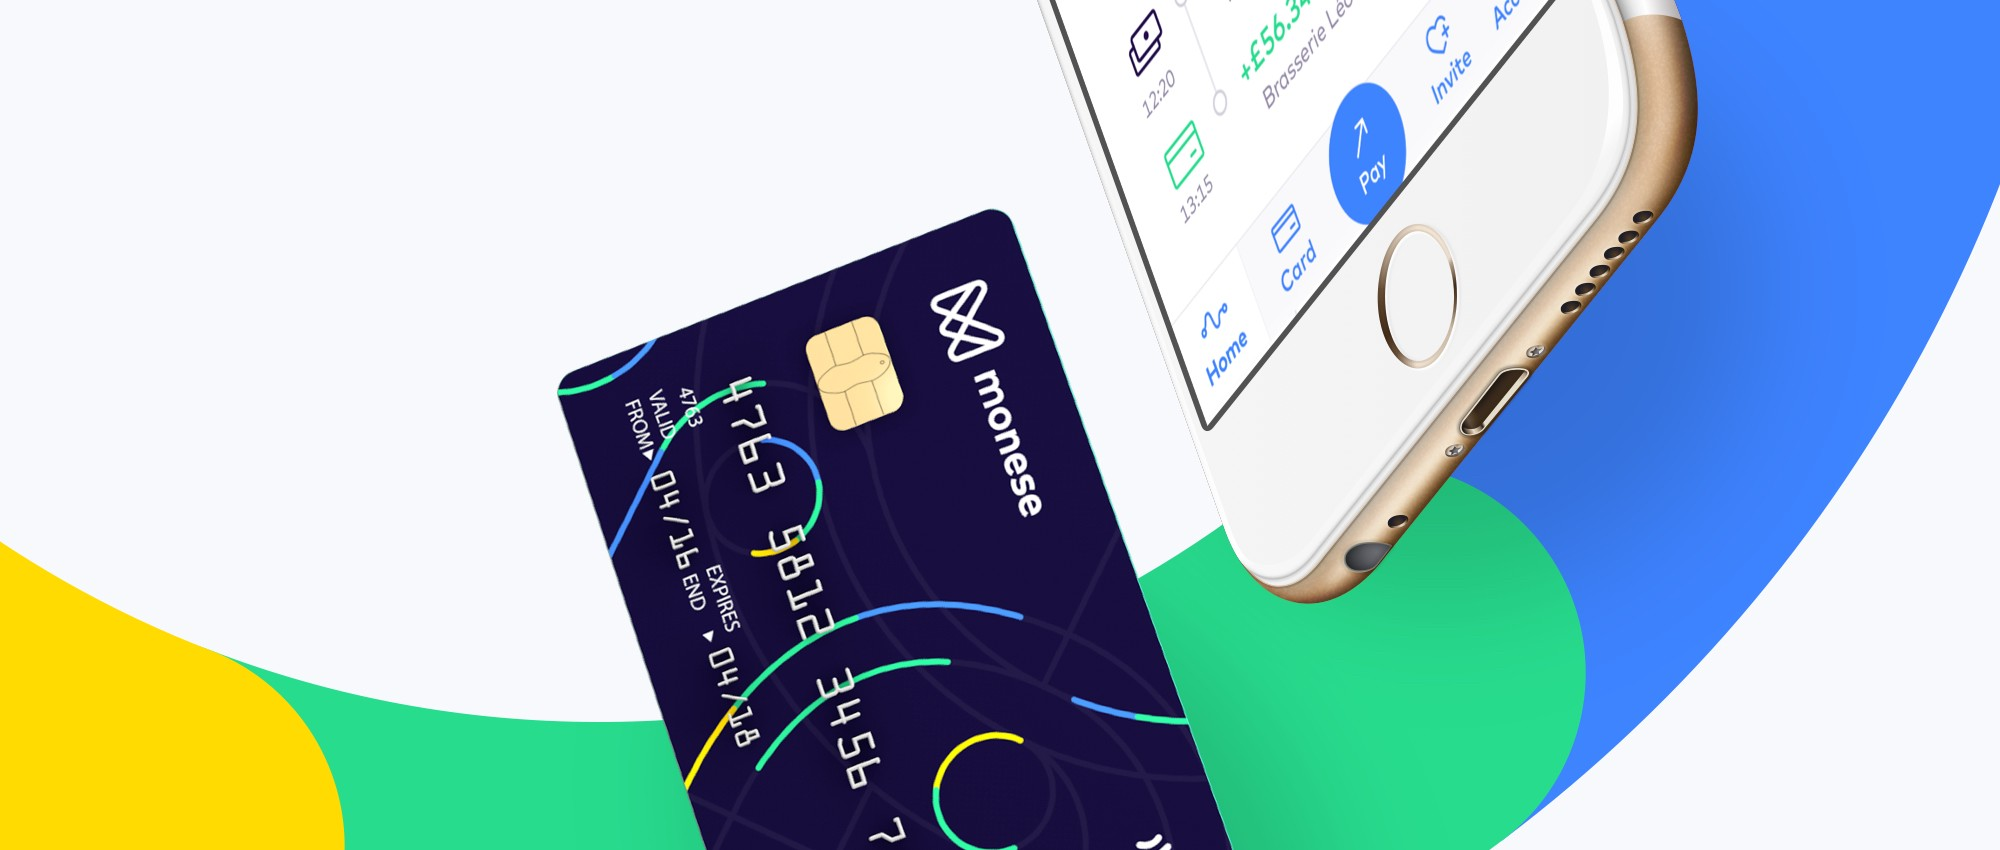 Rebranding a digital bank: The story behind our new look - VARIEDY